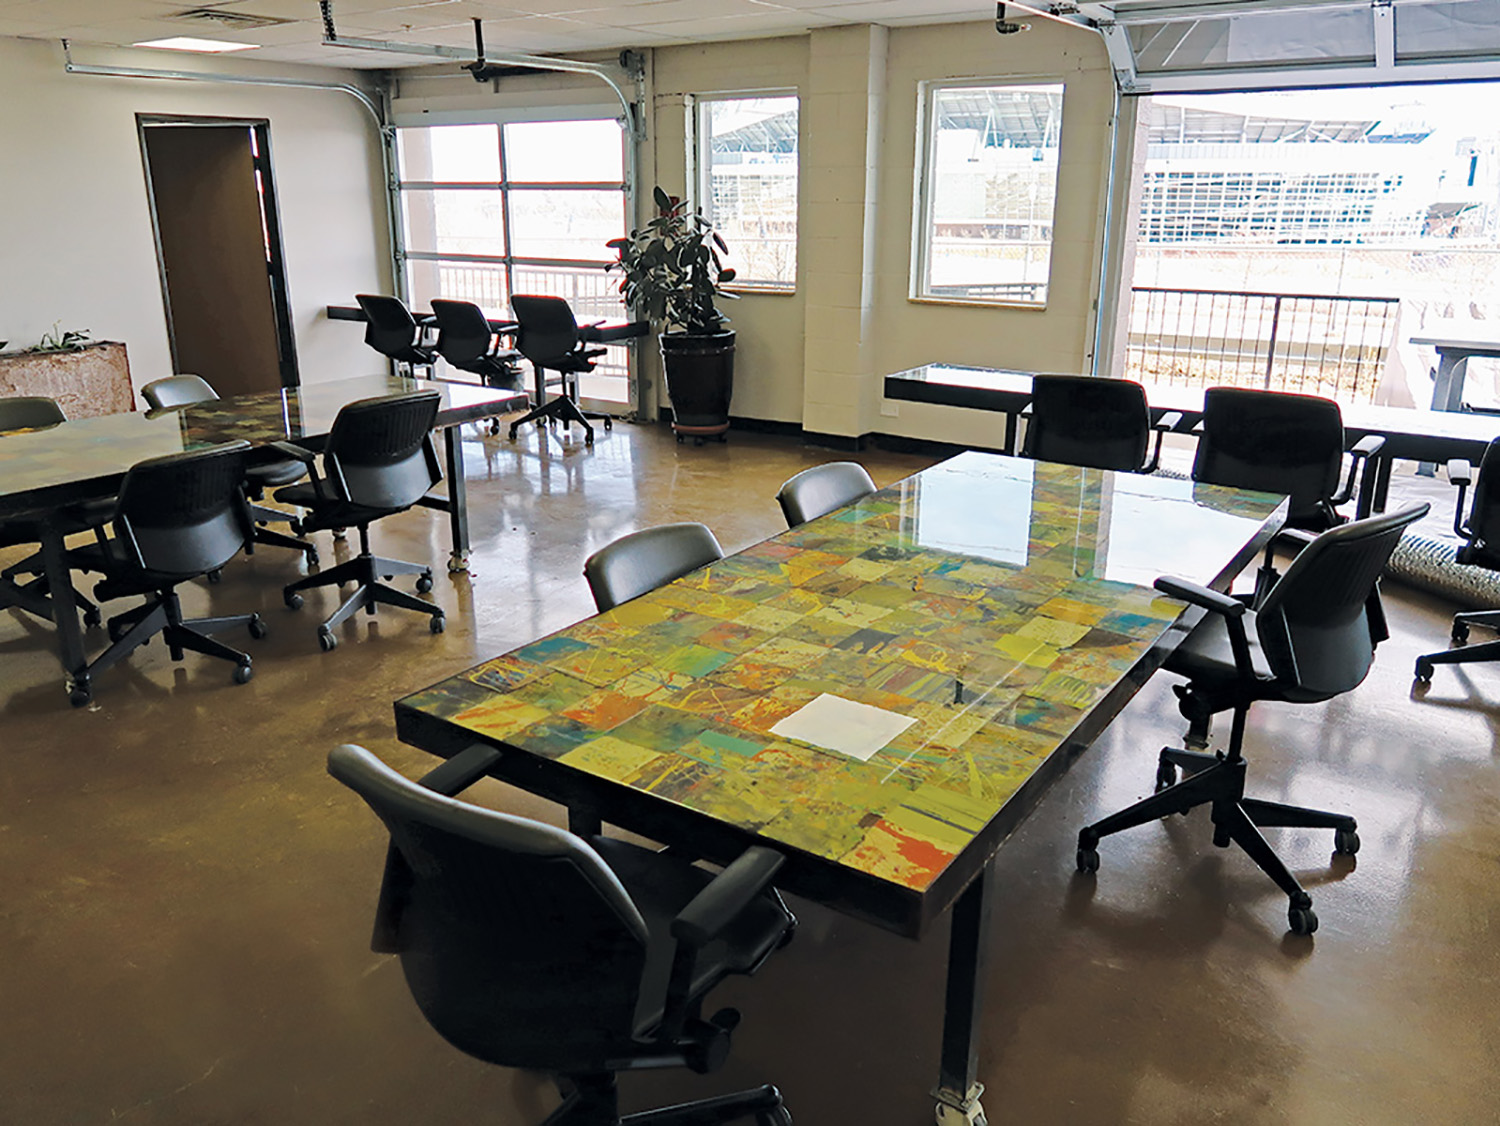 conference room, the main office space